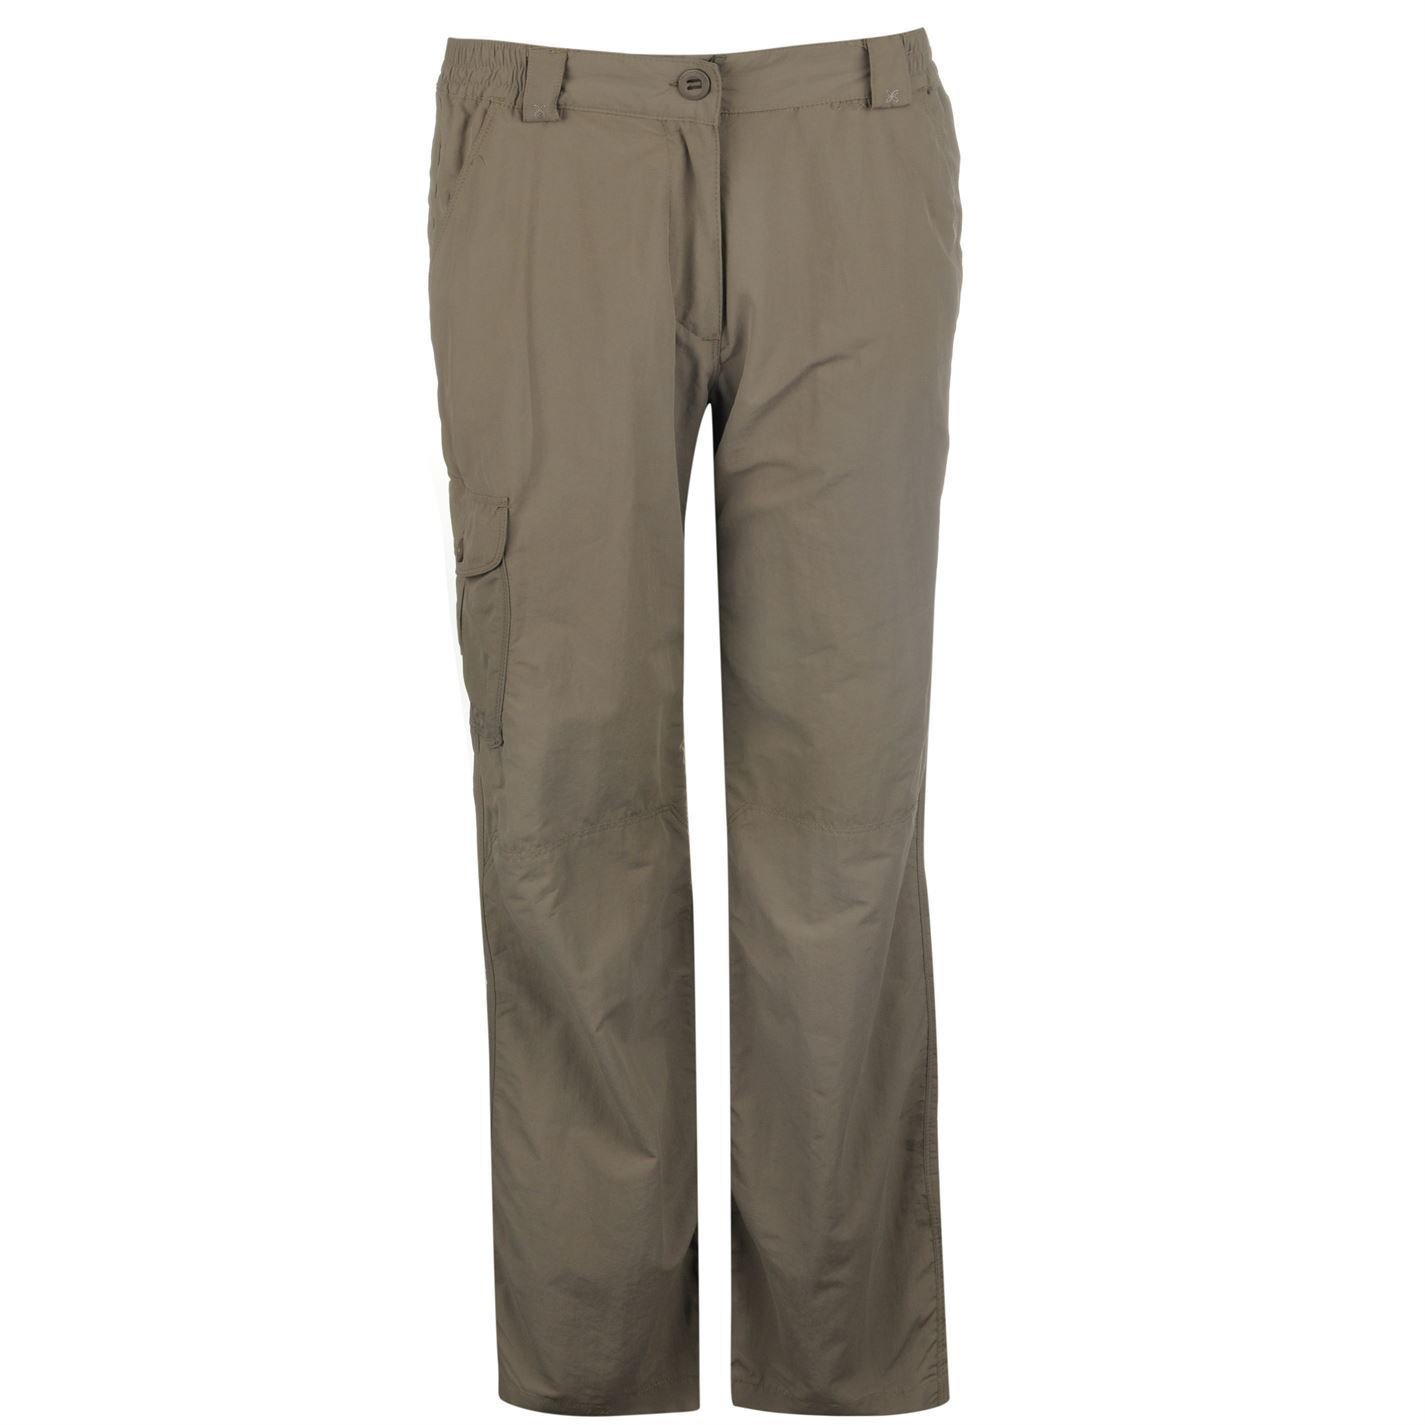 Craghoppers Womens Ladies N Life Trousers Casual Pants Bottoms Clothing Wear